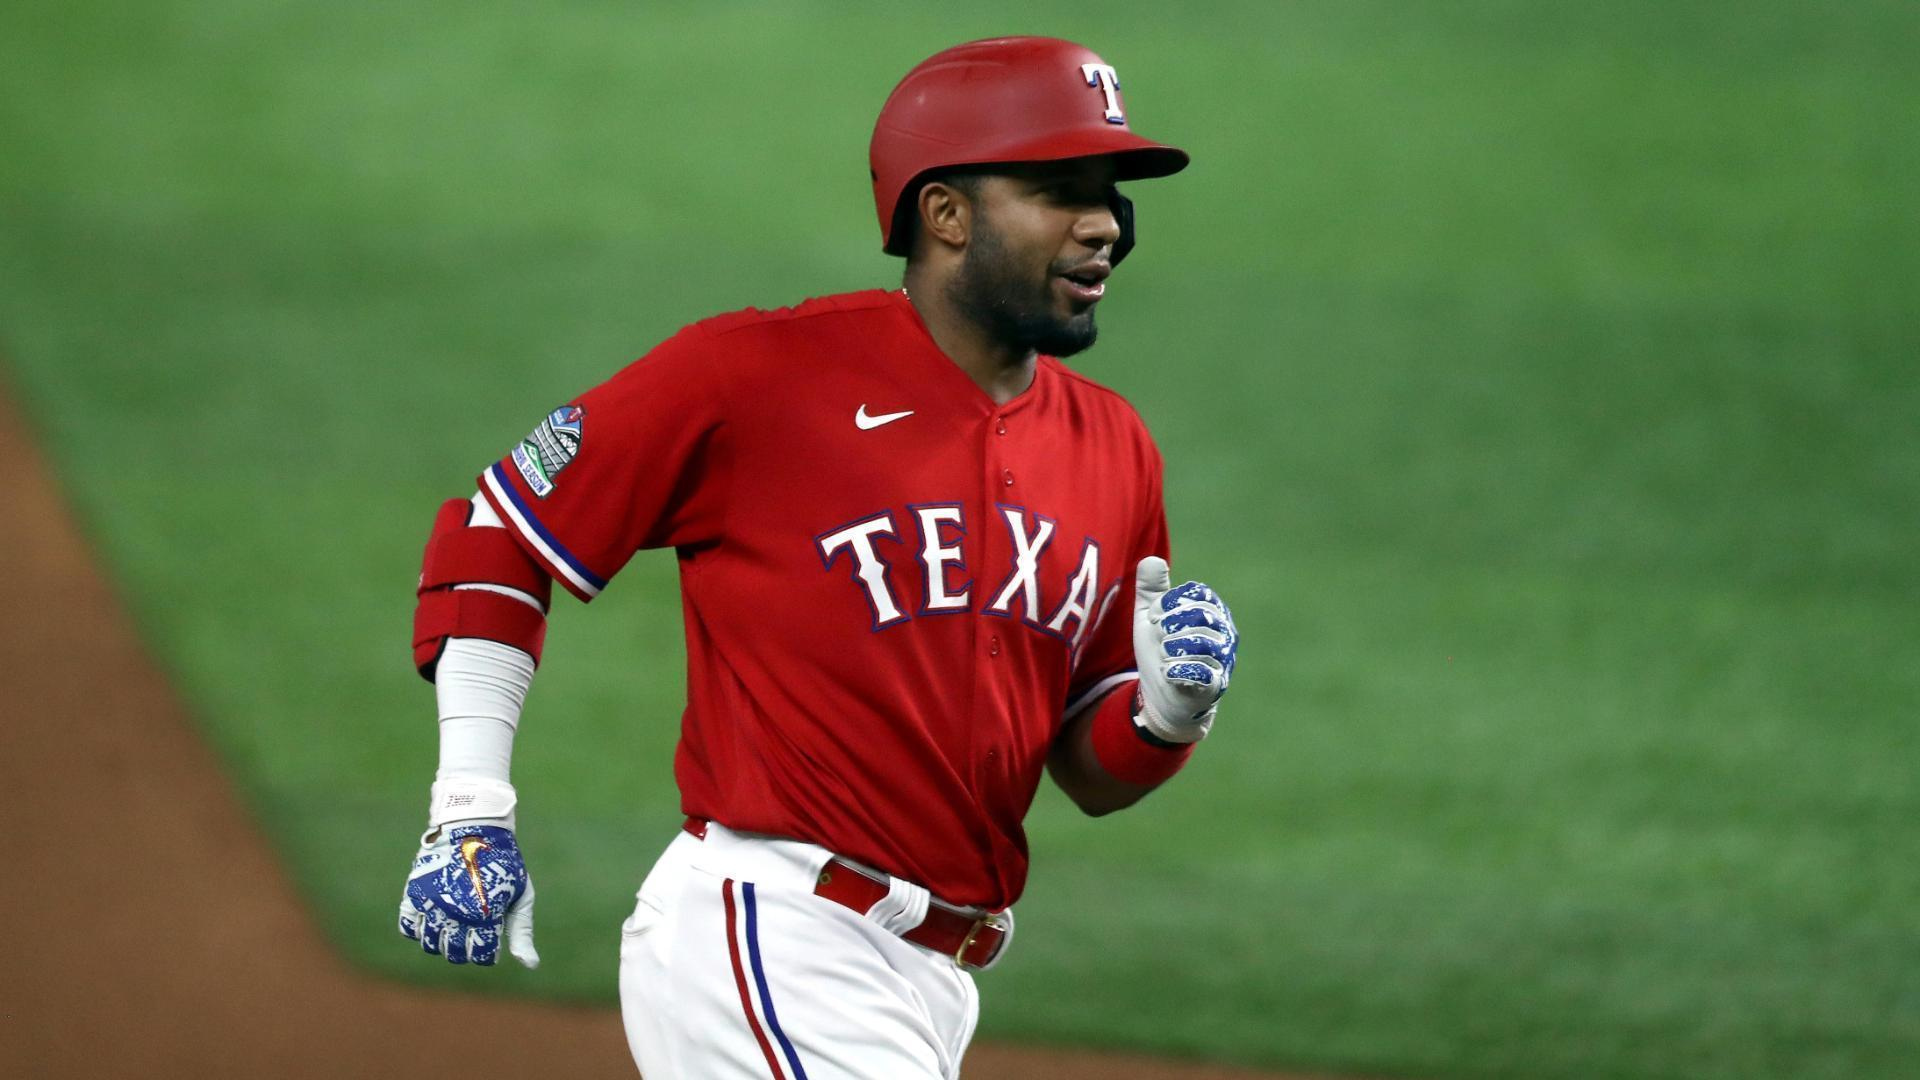 Can Andrus bounce back in Oakland after a rough 2020?